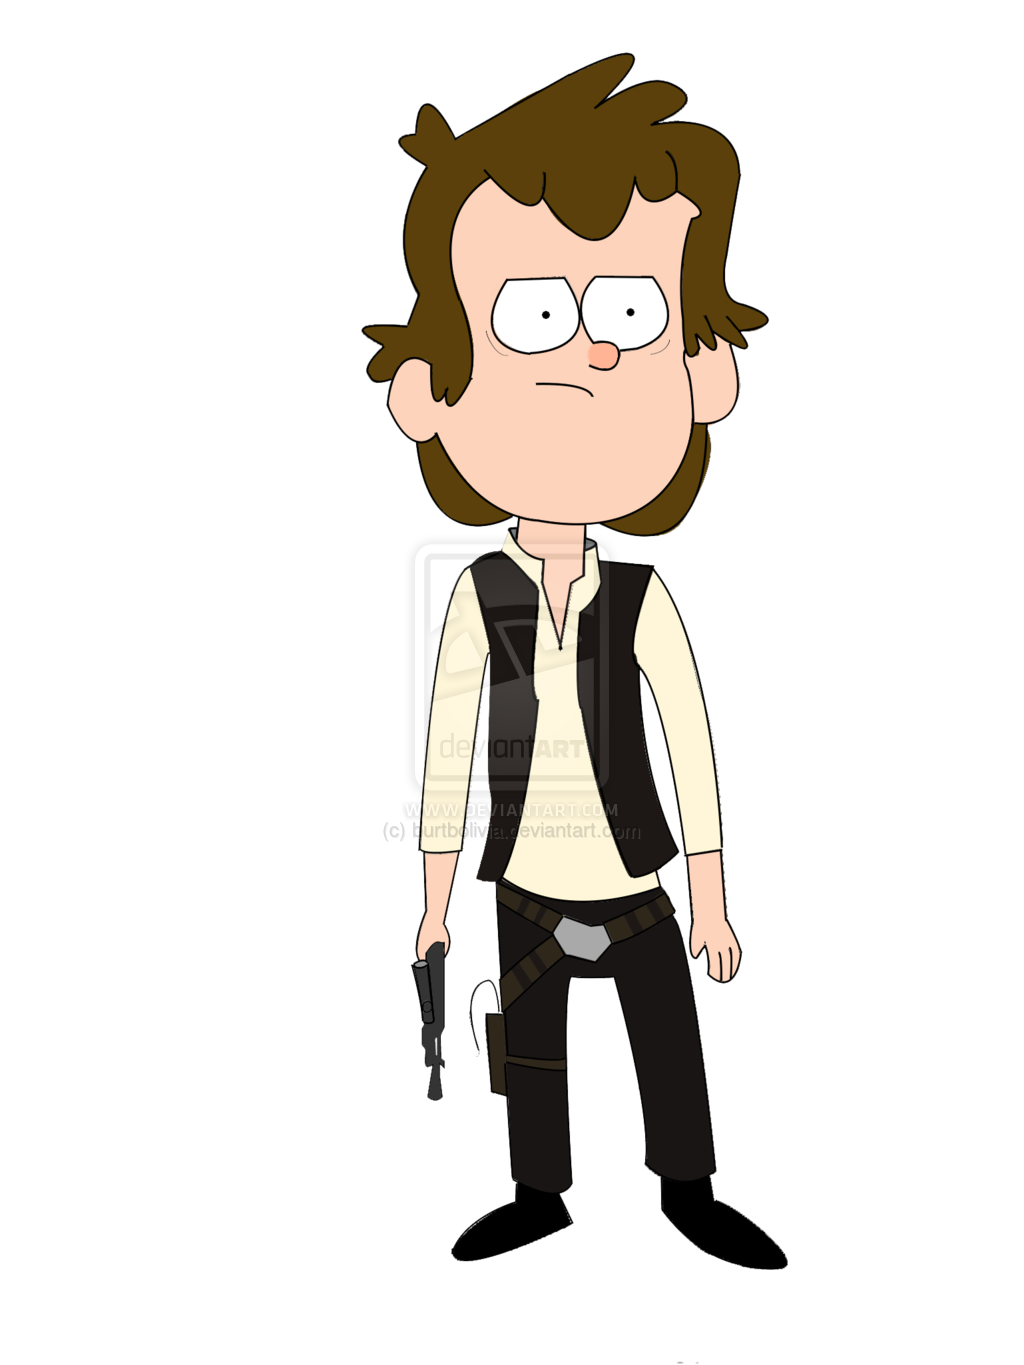 Star wars hans solo clipart graphic download Space Warrior Mascot graphic download